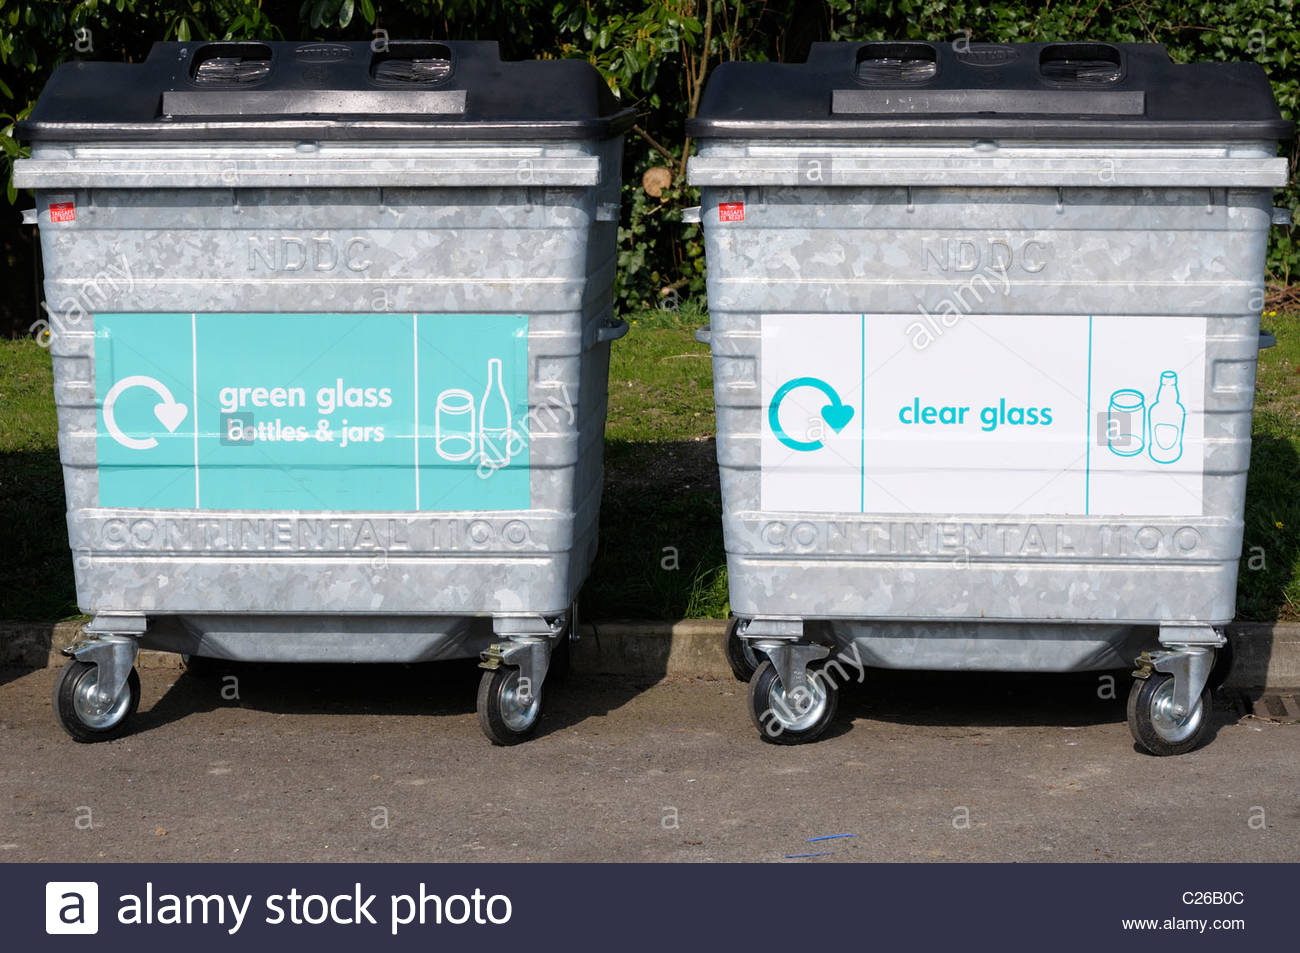 Straight on image of glass recycling bins at Blandford Forum in Dorset, England - Stock Image